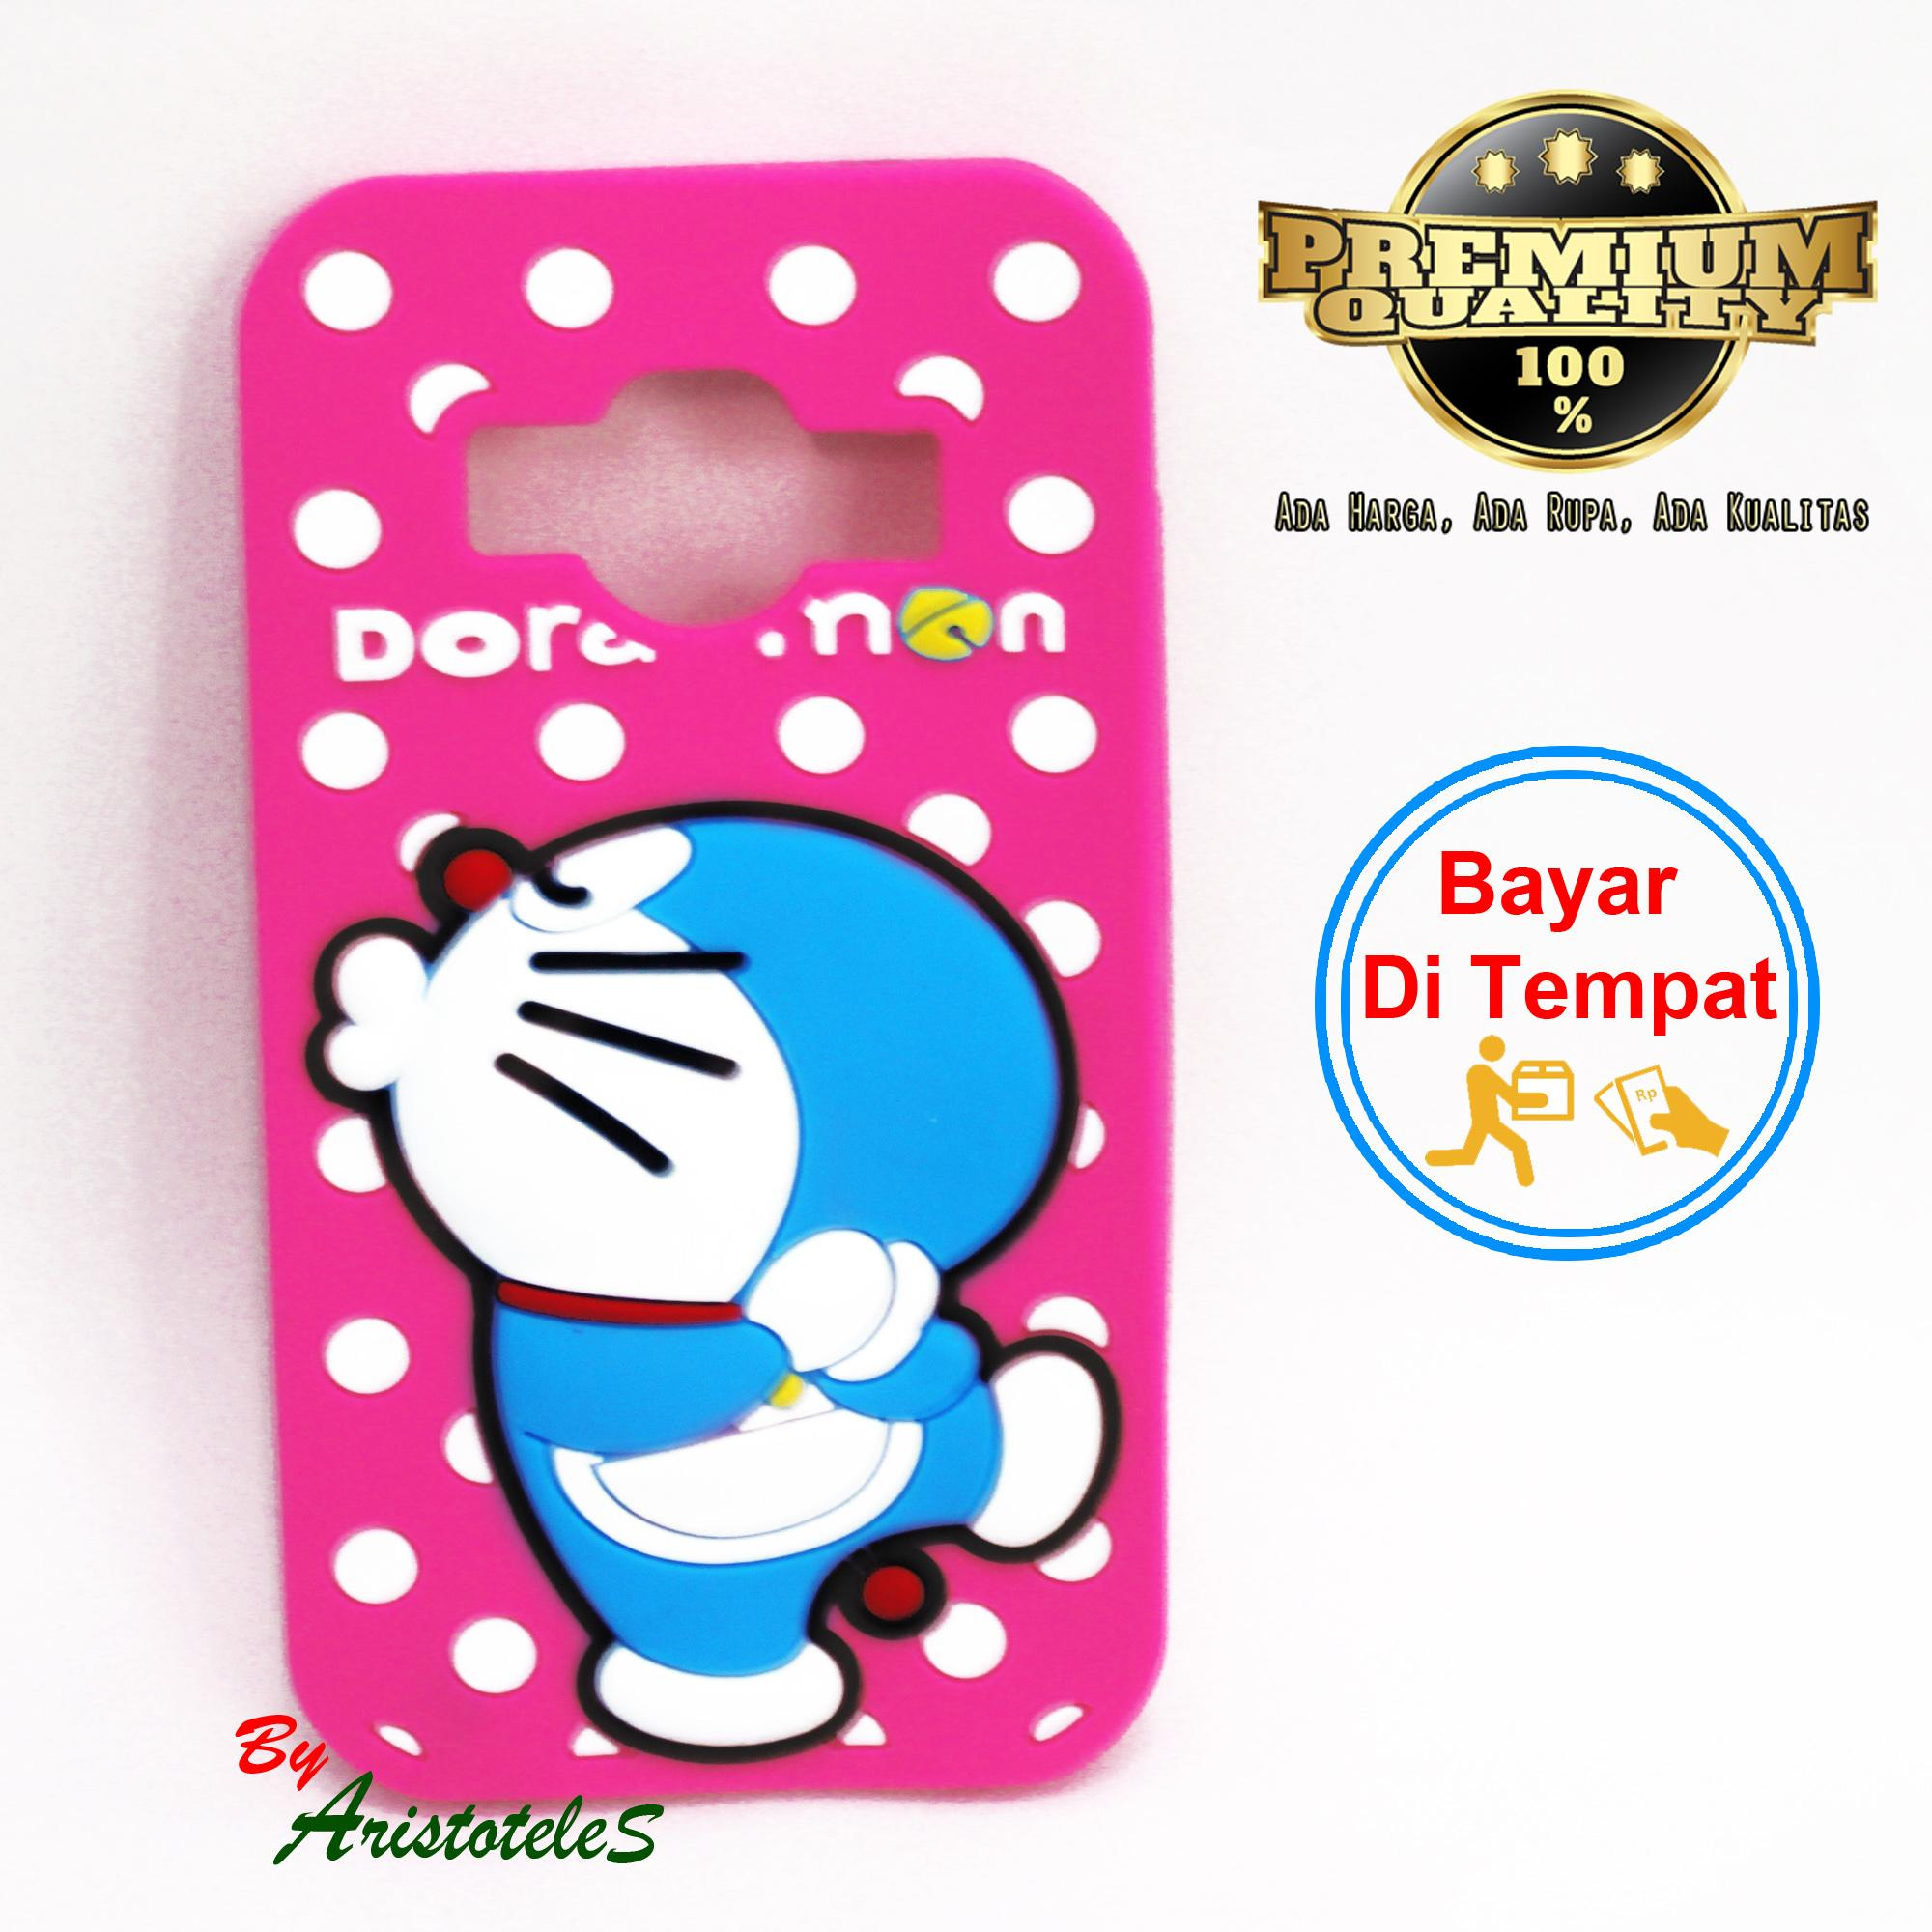 Casing / Case / Softcase Karakter Doraemon GALAXY J1 ACE